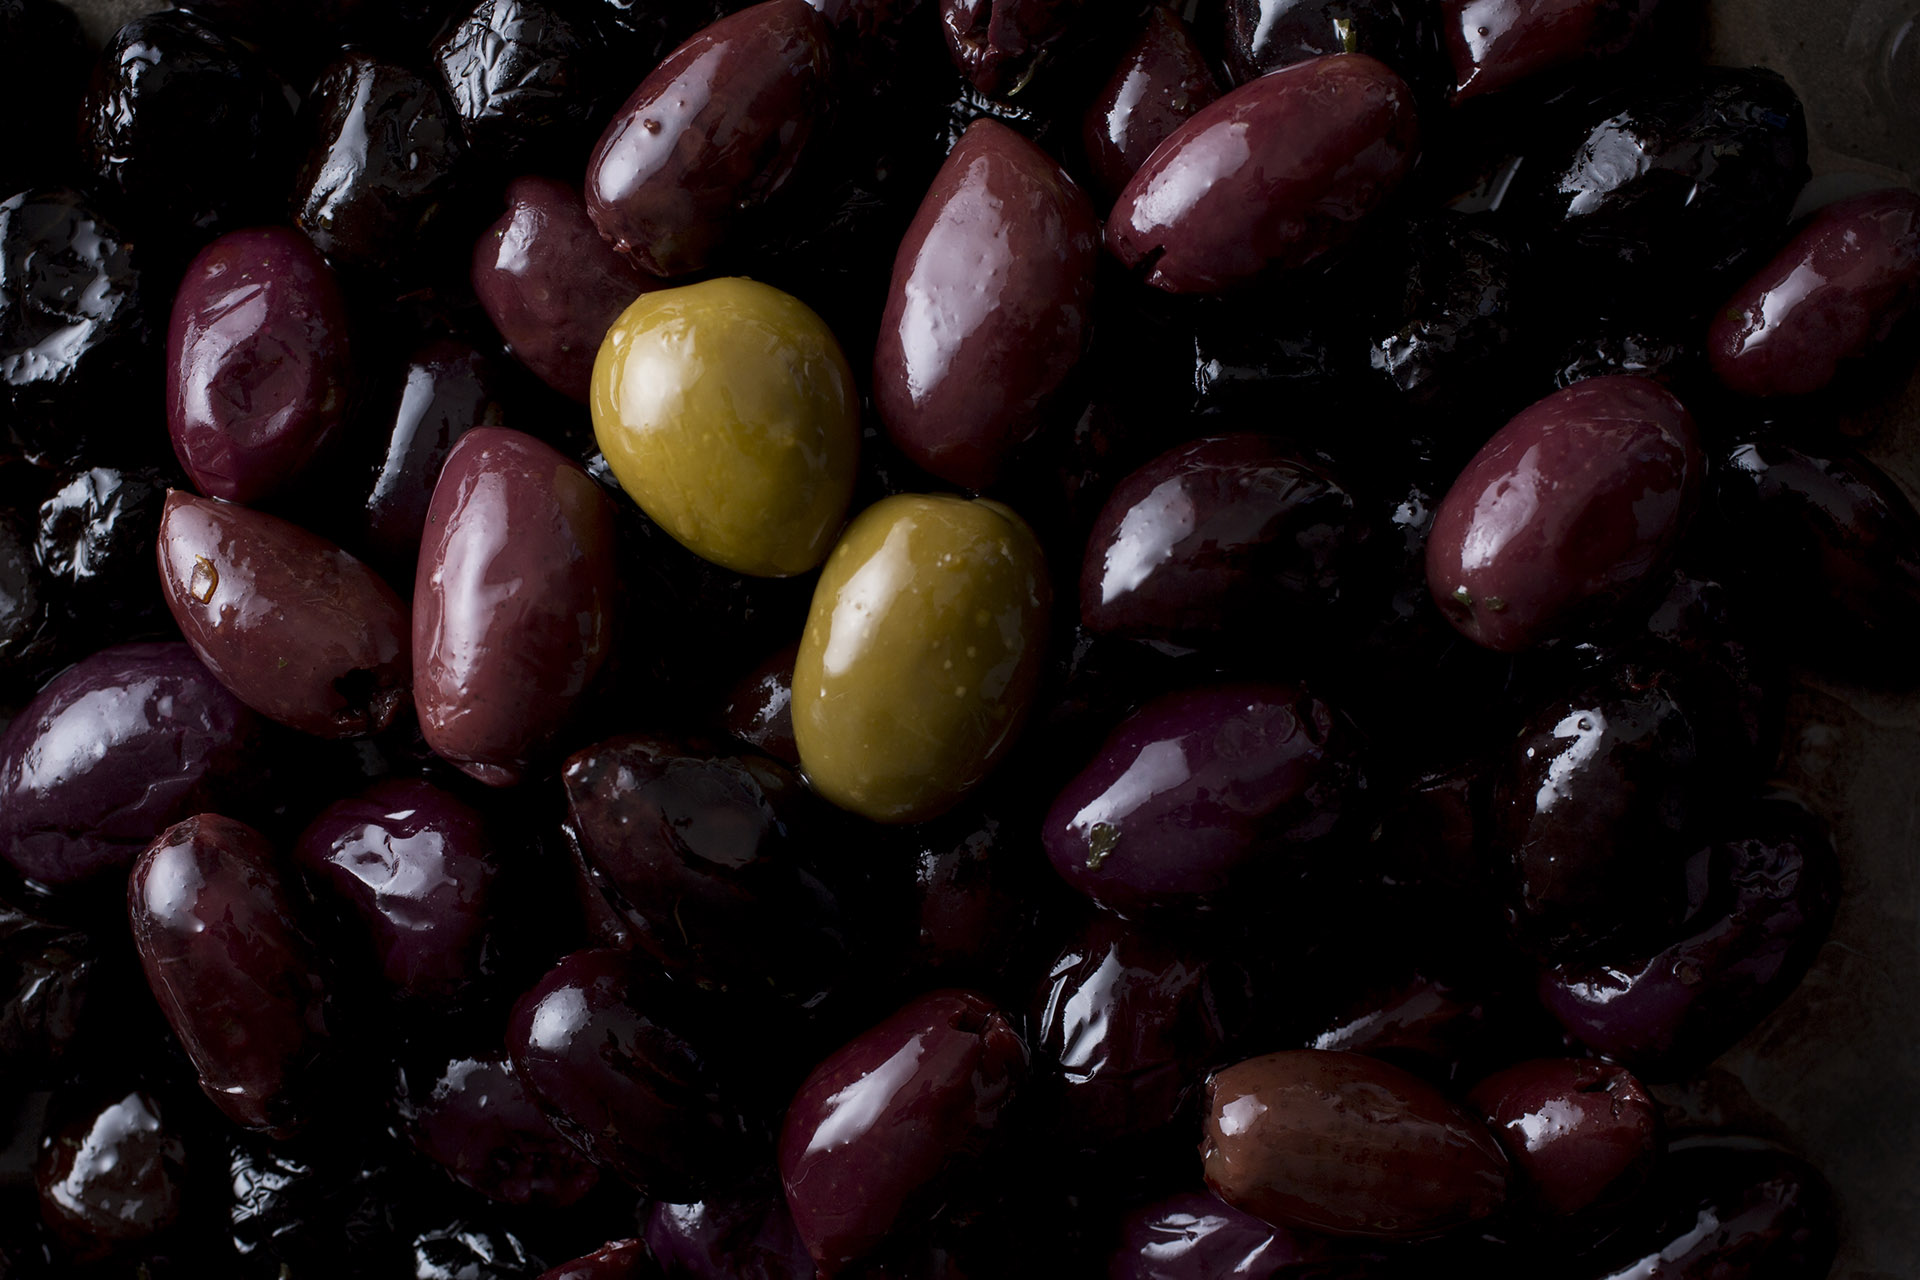 Mixed green, red and purple olives